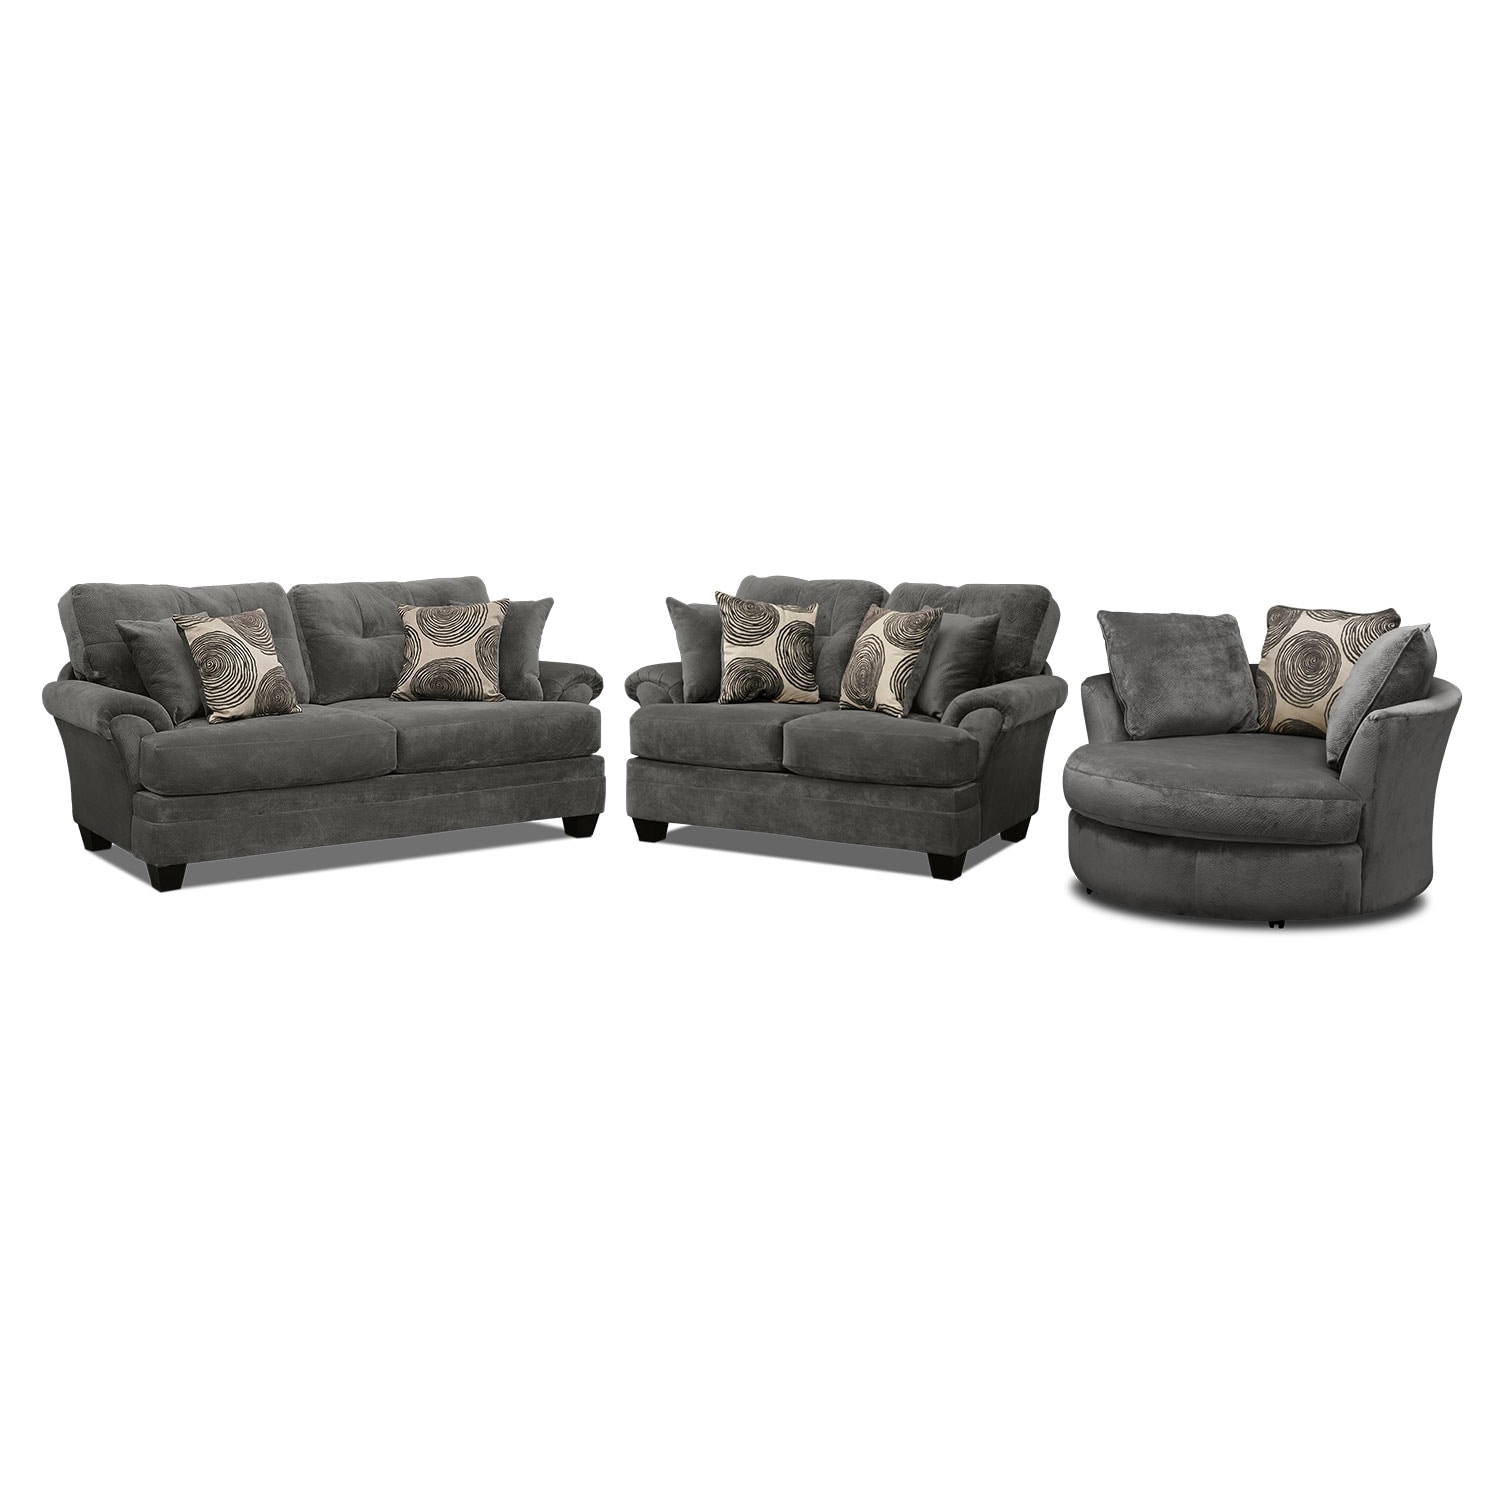 Living Room Furniture   Cordelle Sofa, Loveseat And Swivel Chair Set   Gray